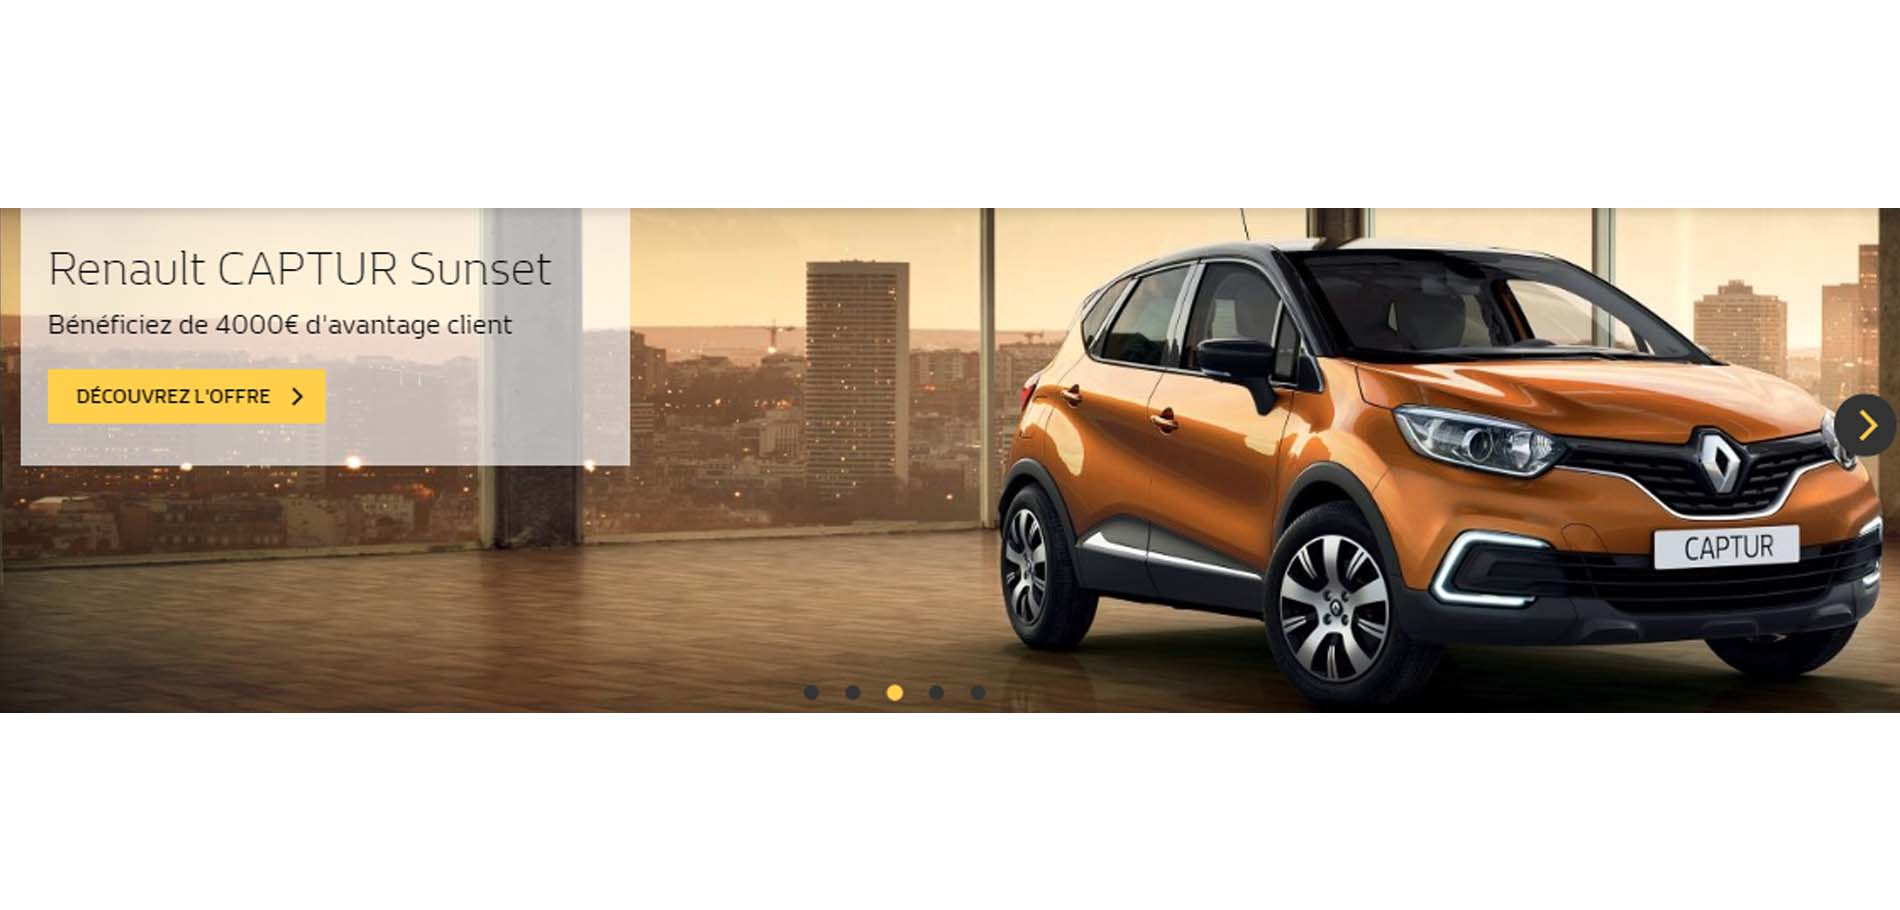 Renault Captur Sunset.jpg